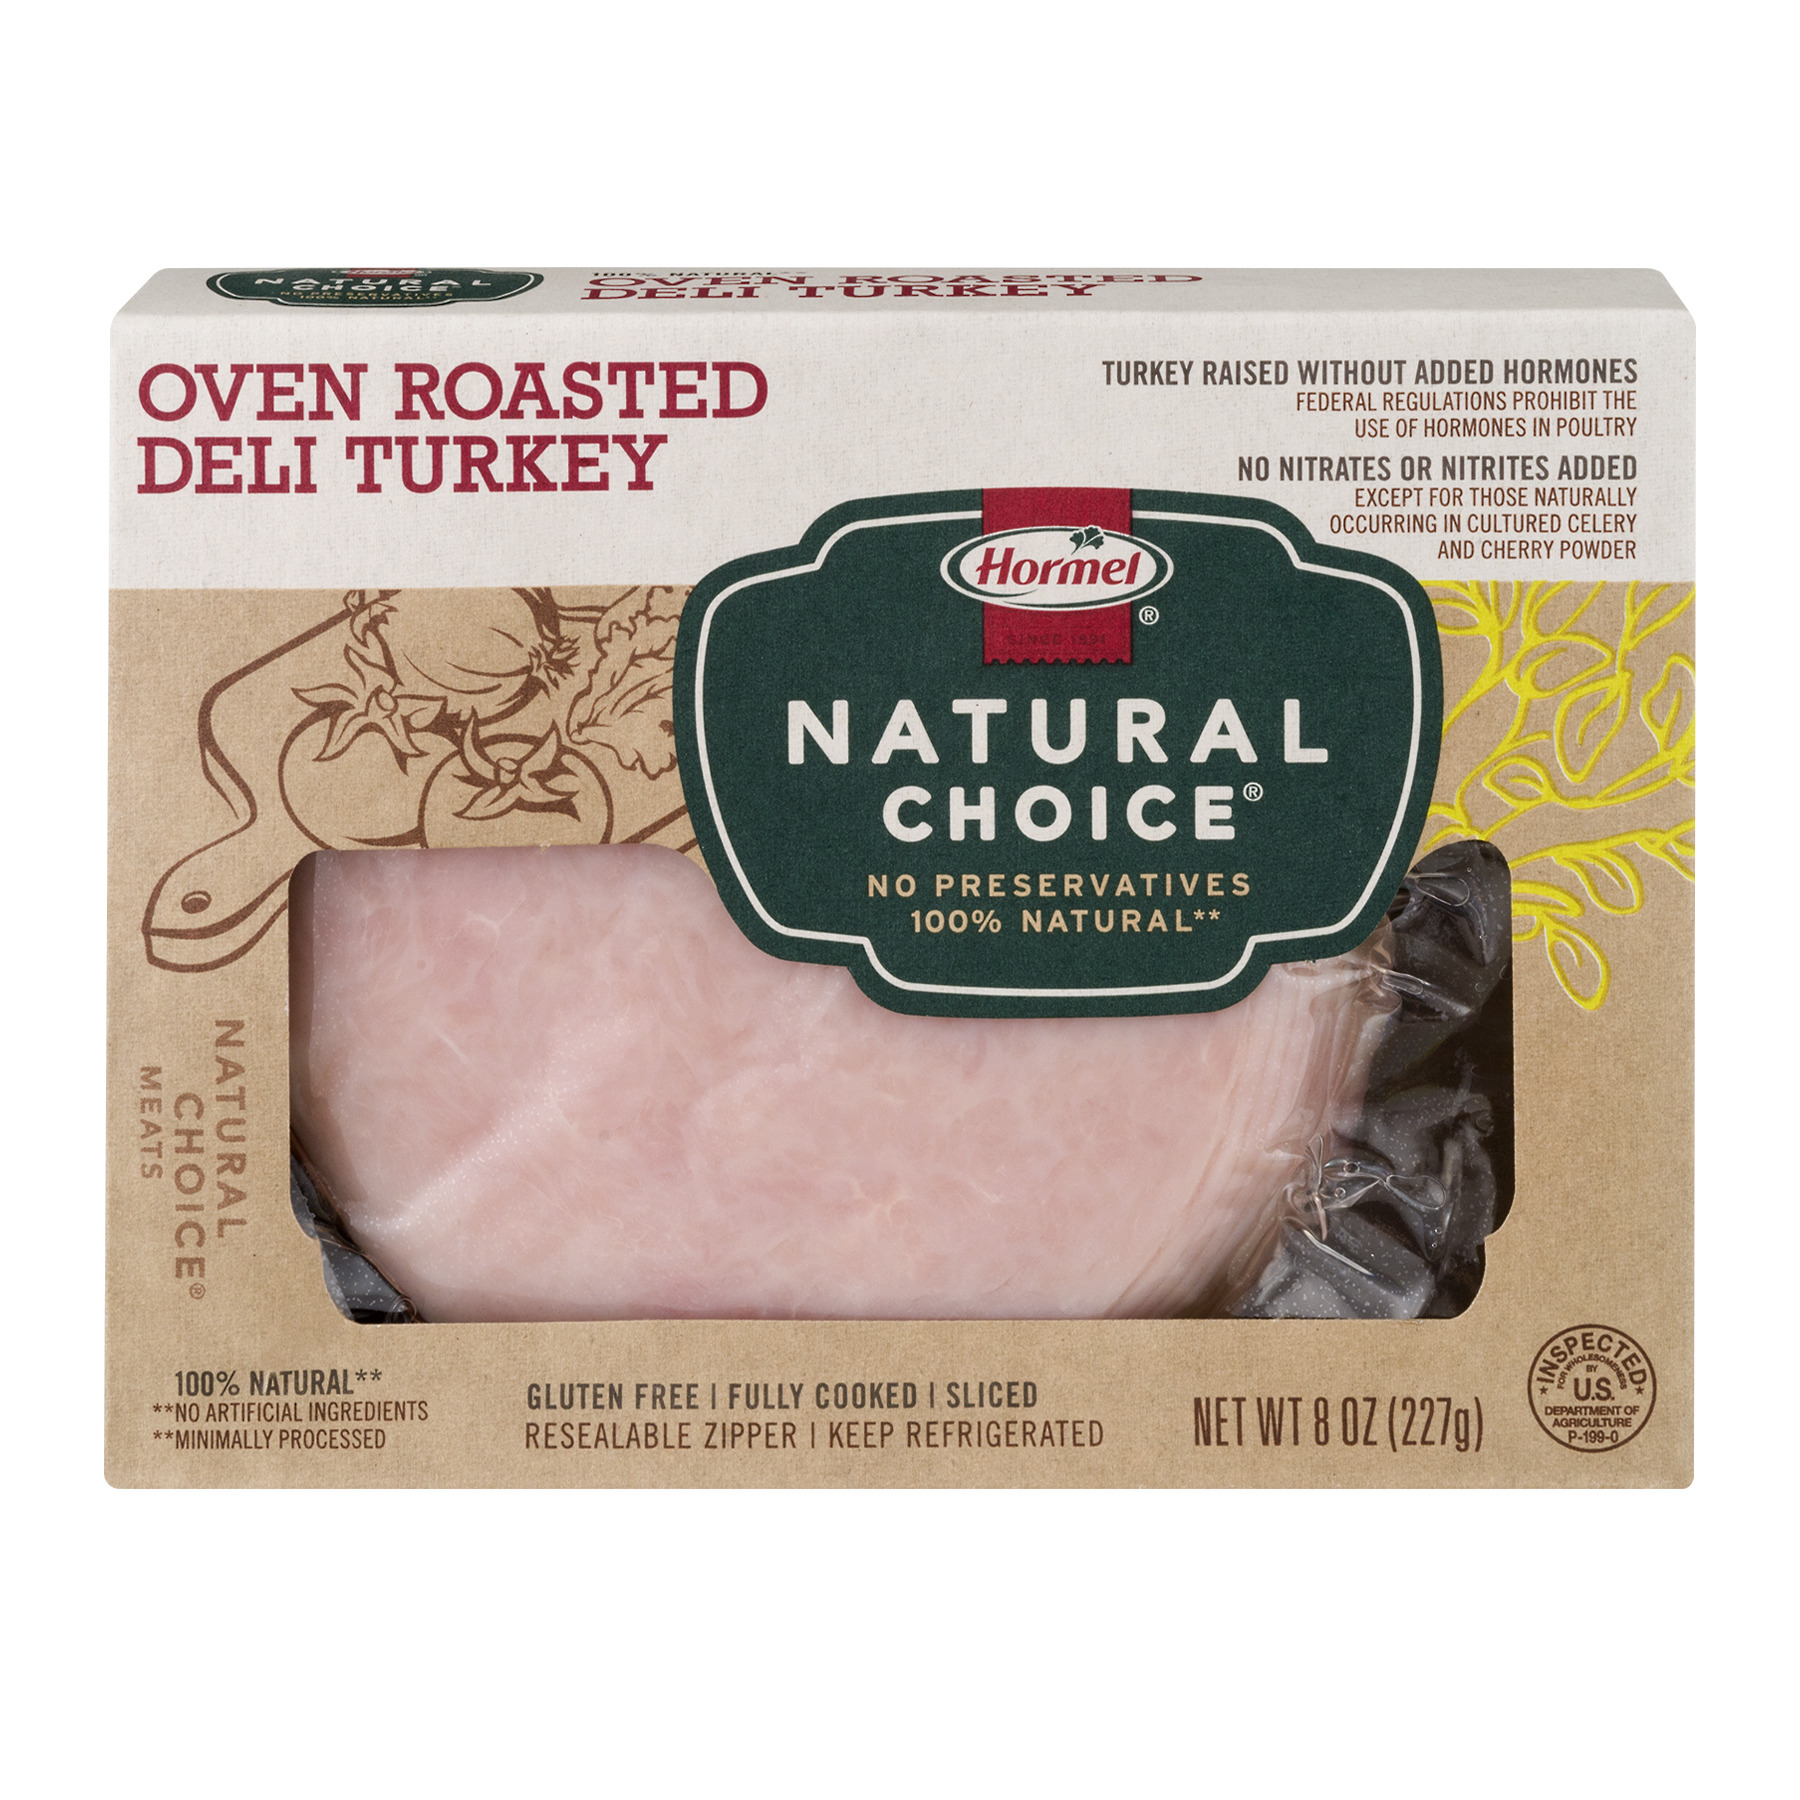 Hormel Natural Choice Oven Roasted Deli Turkey, 8.0 OZ